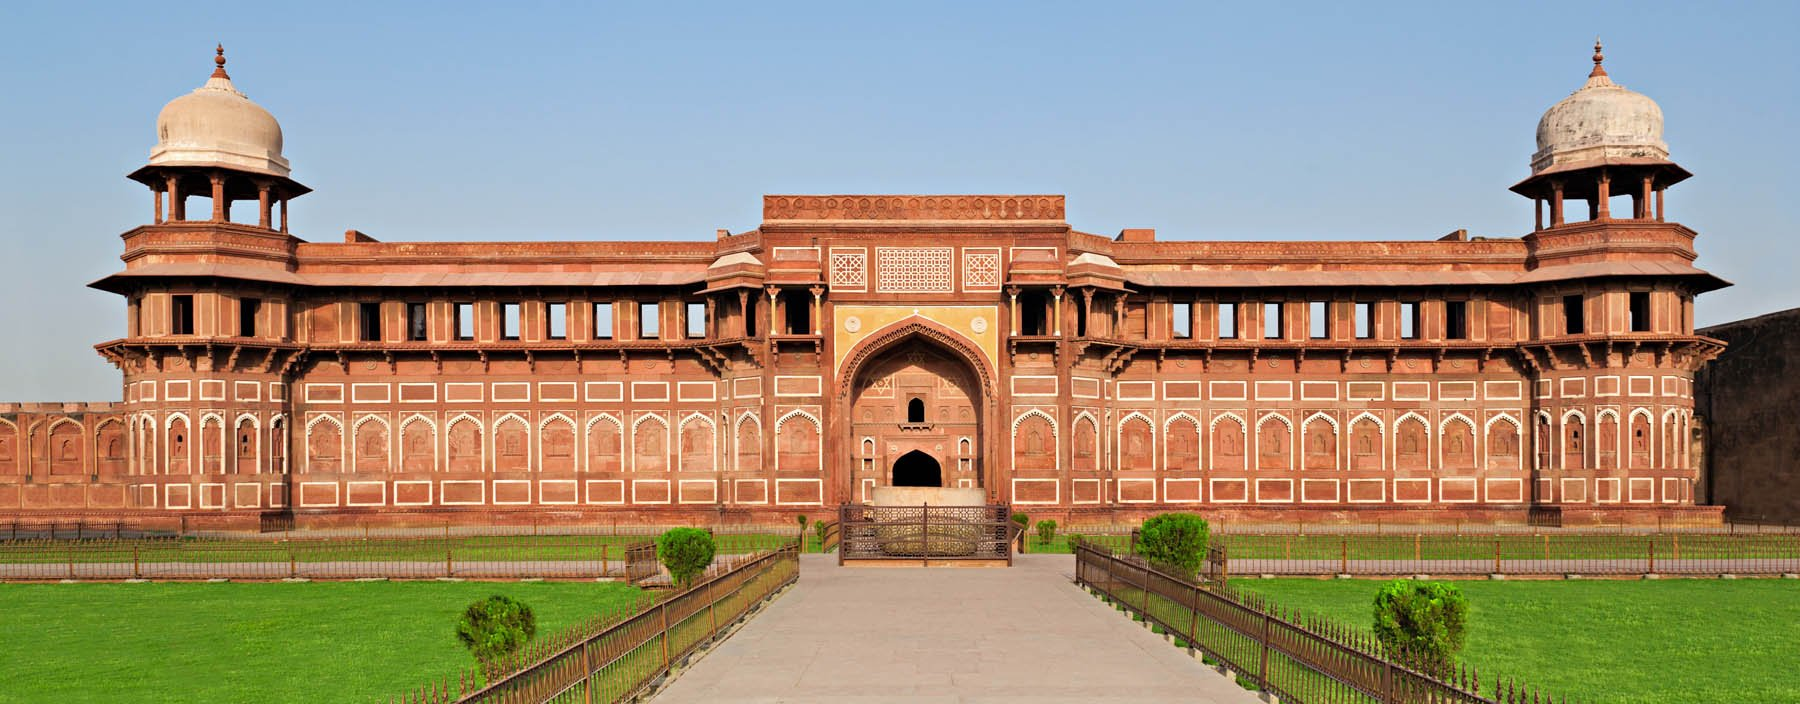 in, agra, jahangir palace inside the red fort in agra.jpg